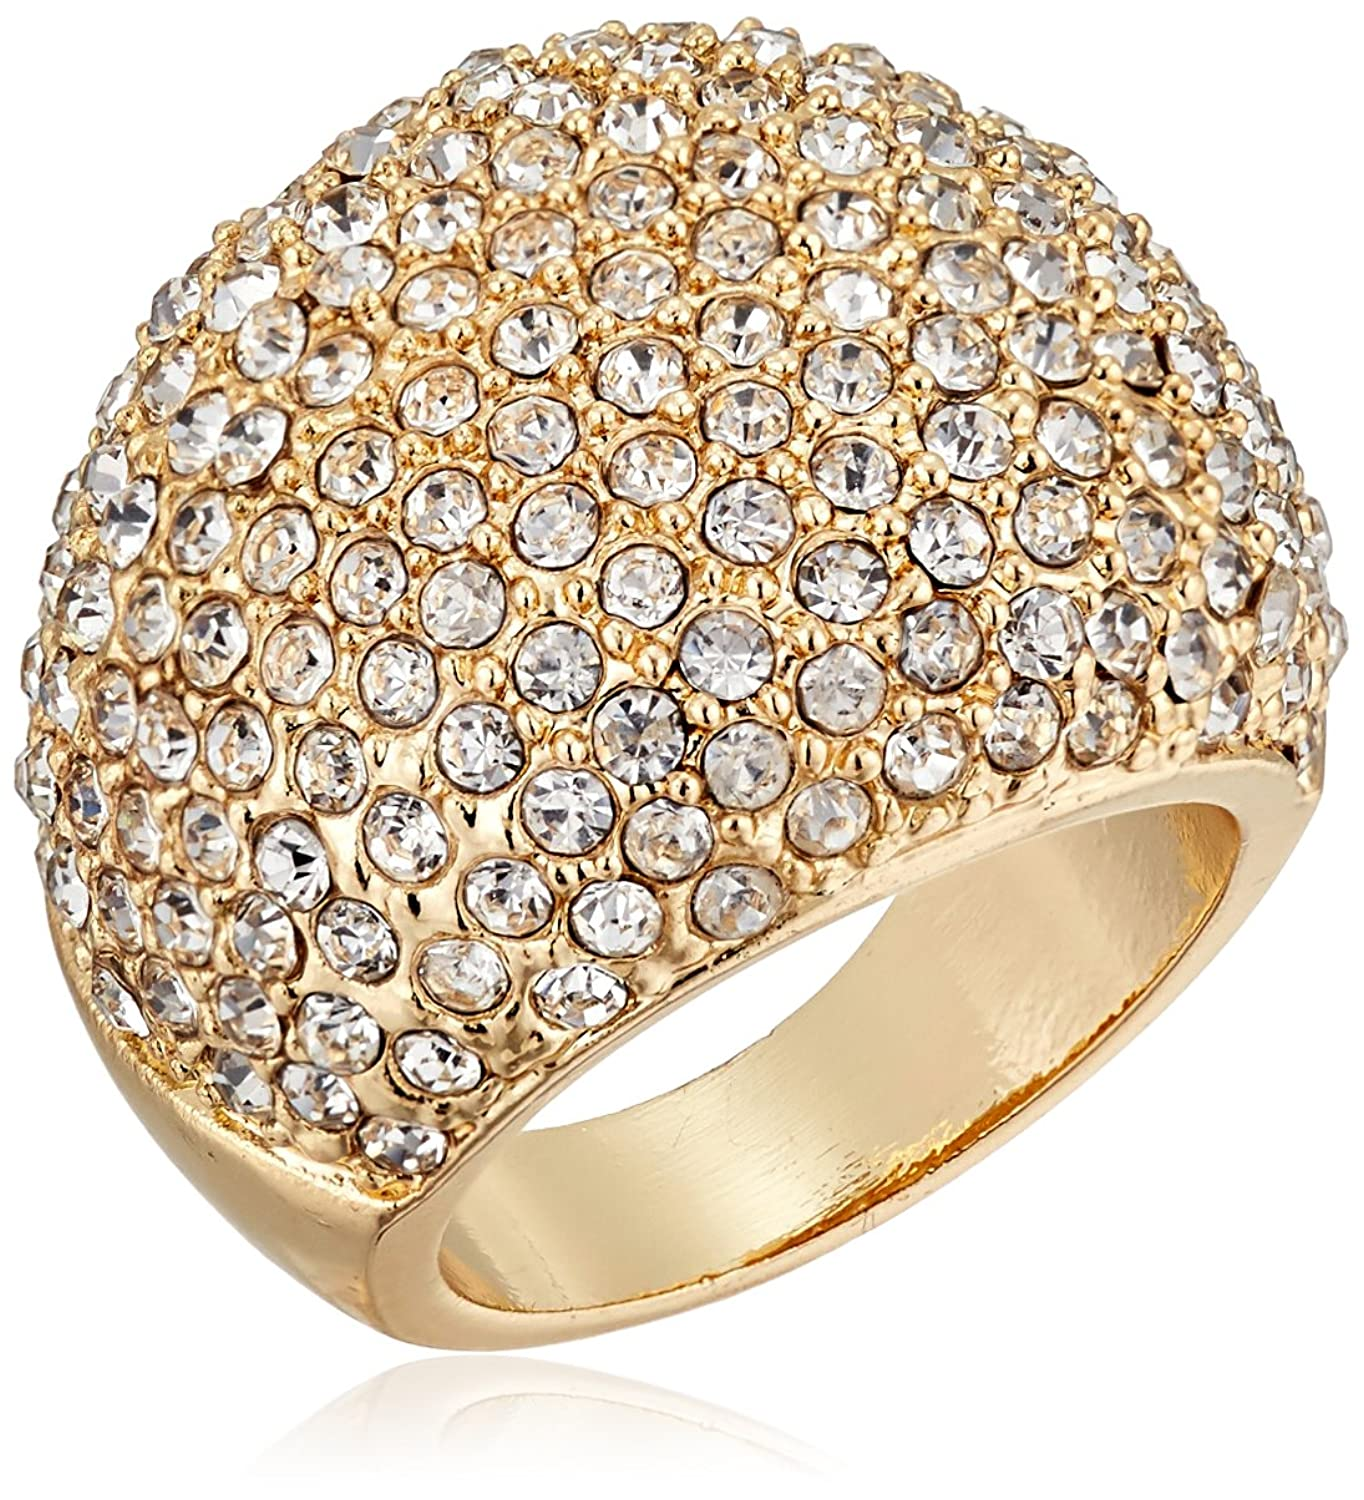 GUESS Stones Ring, Size 7